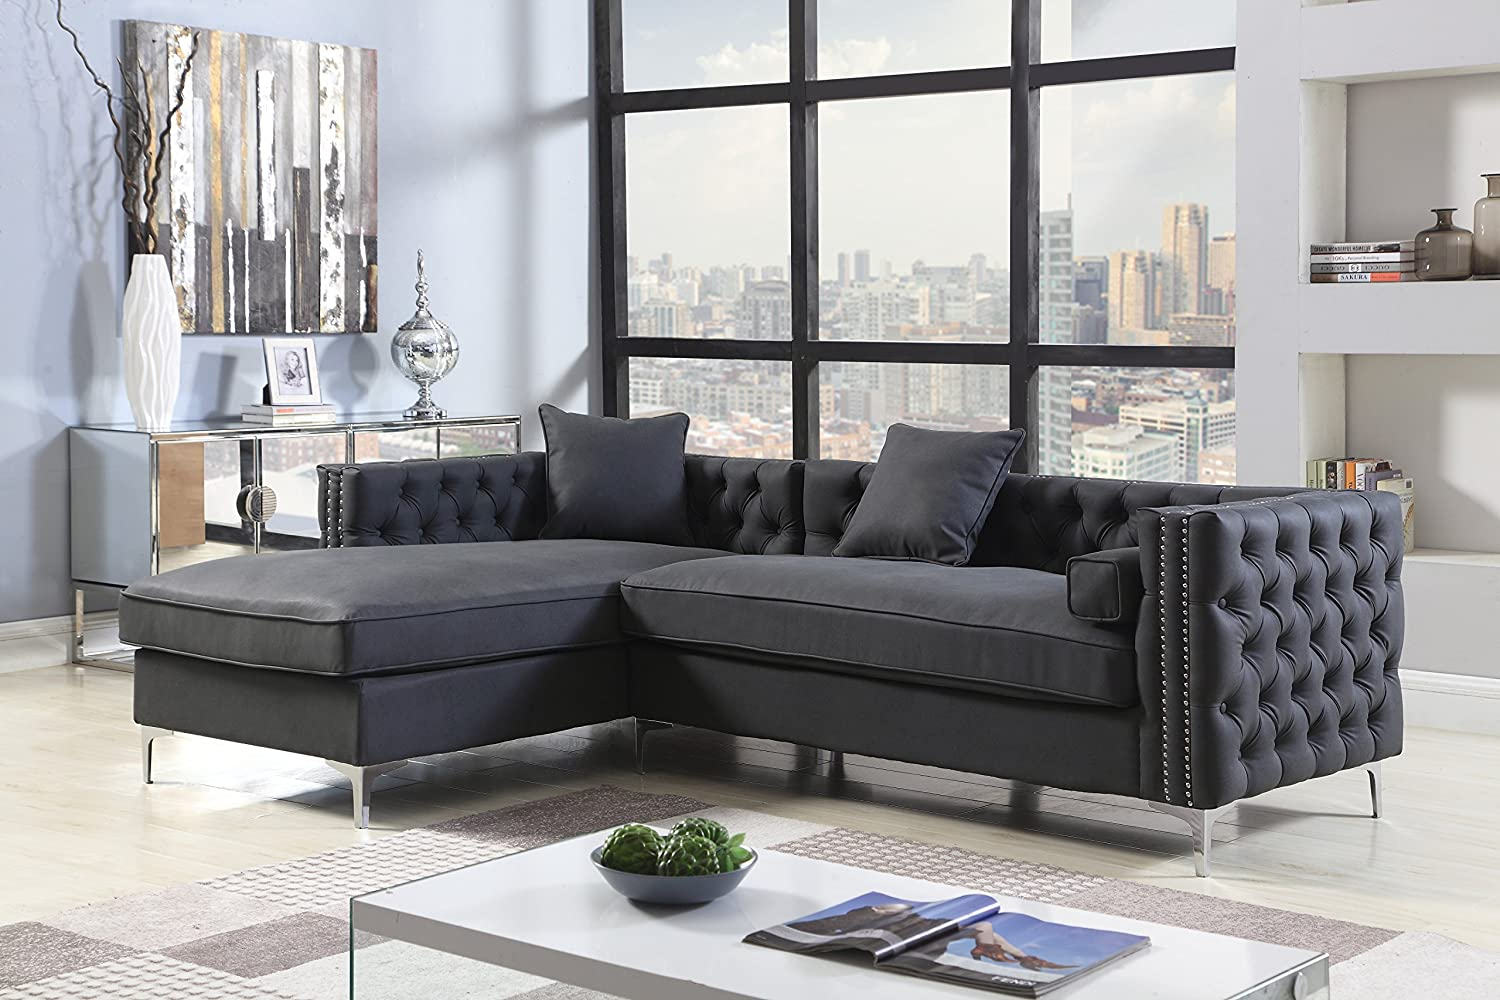 Amazon Com Iconic Home Da Vinci Left Hand Facing Sectional Sofa L Shape Chaise Pu Leather Button Tufted With Silver Nailhead Trim Silvertone Metal Leg With 3 Accent Pillows Modern Contemporary Black Home